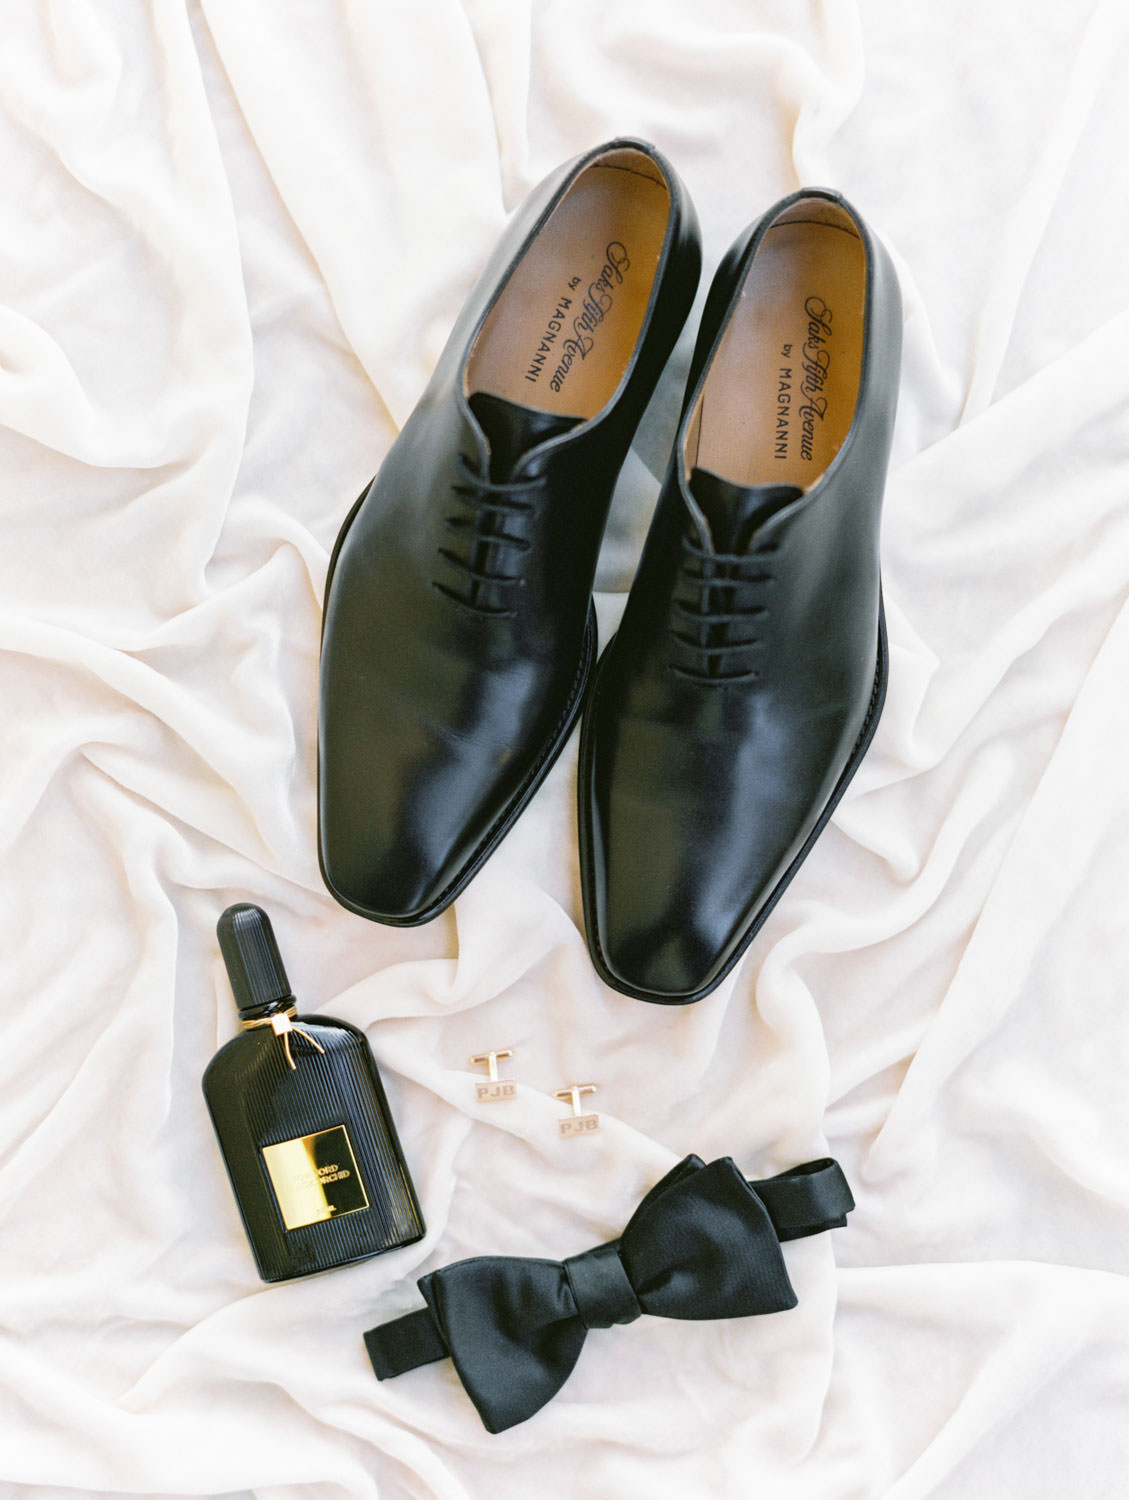 Groom's black Magnanni tuxedo shoes and bowtie styled with cologne and cufflinks with initials on velvet. Miramonte Resort wedding. Film photography by Cavin Elizabeth.